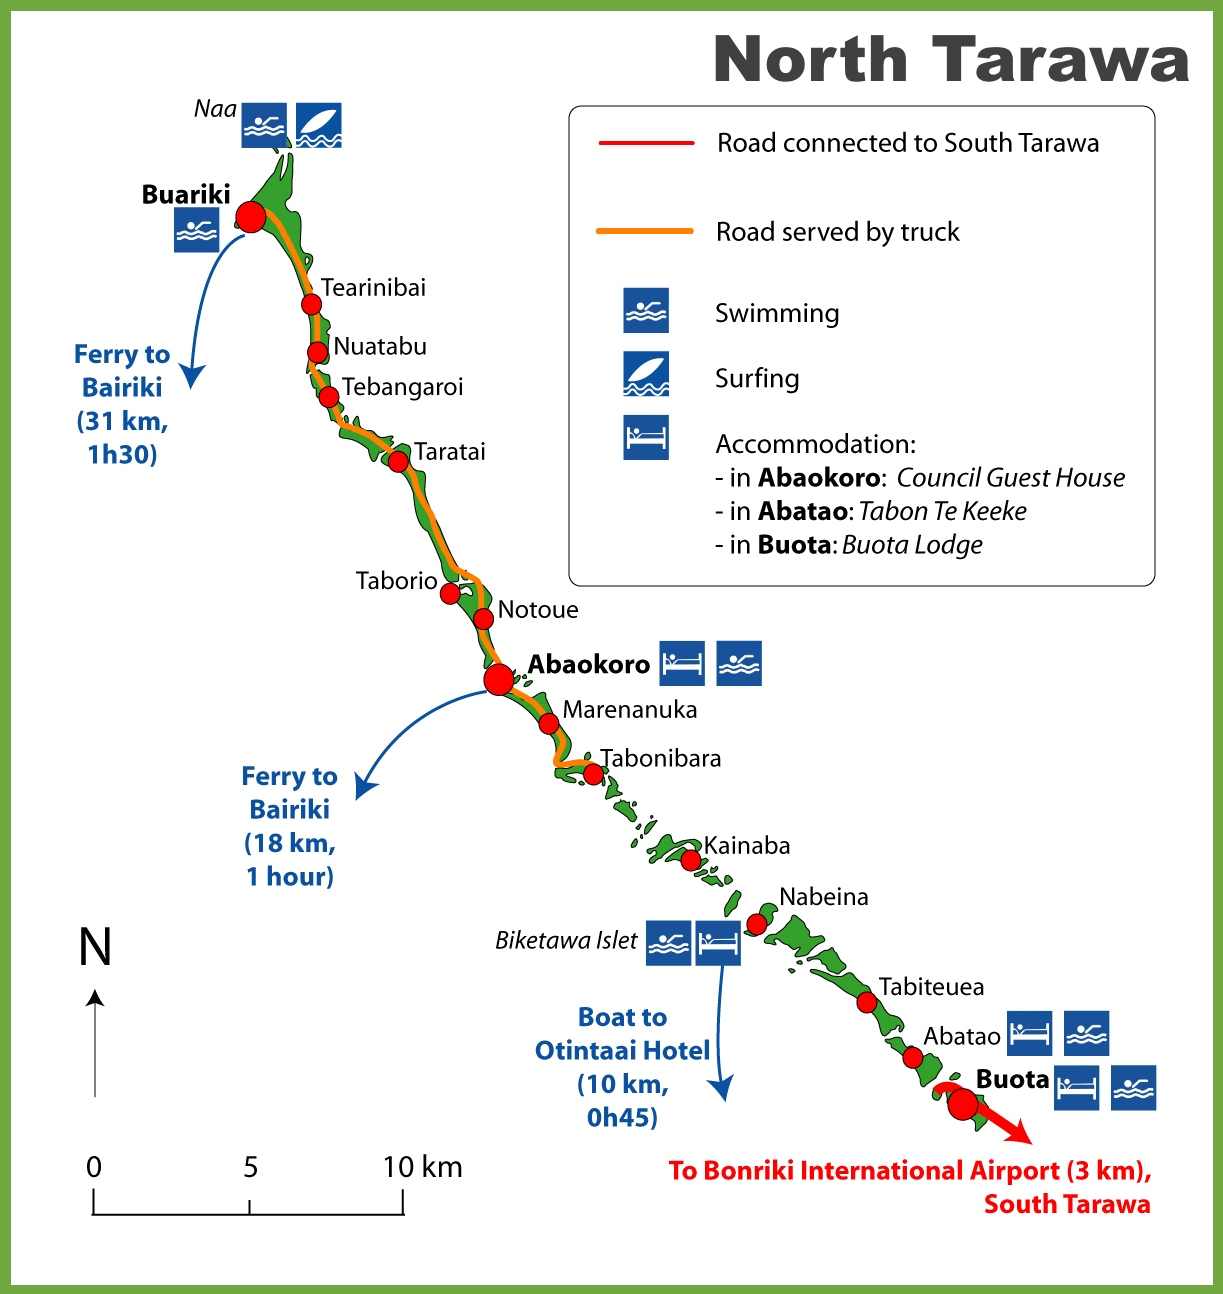 North Tarawa map